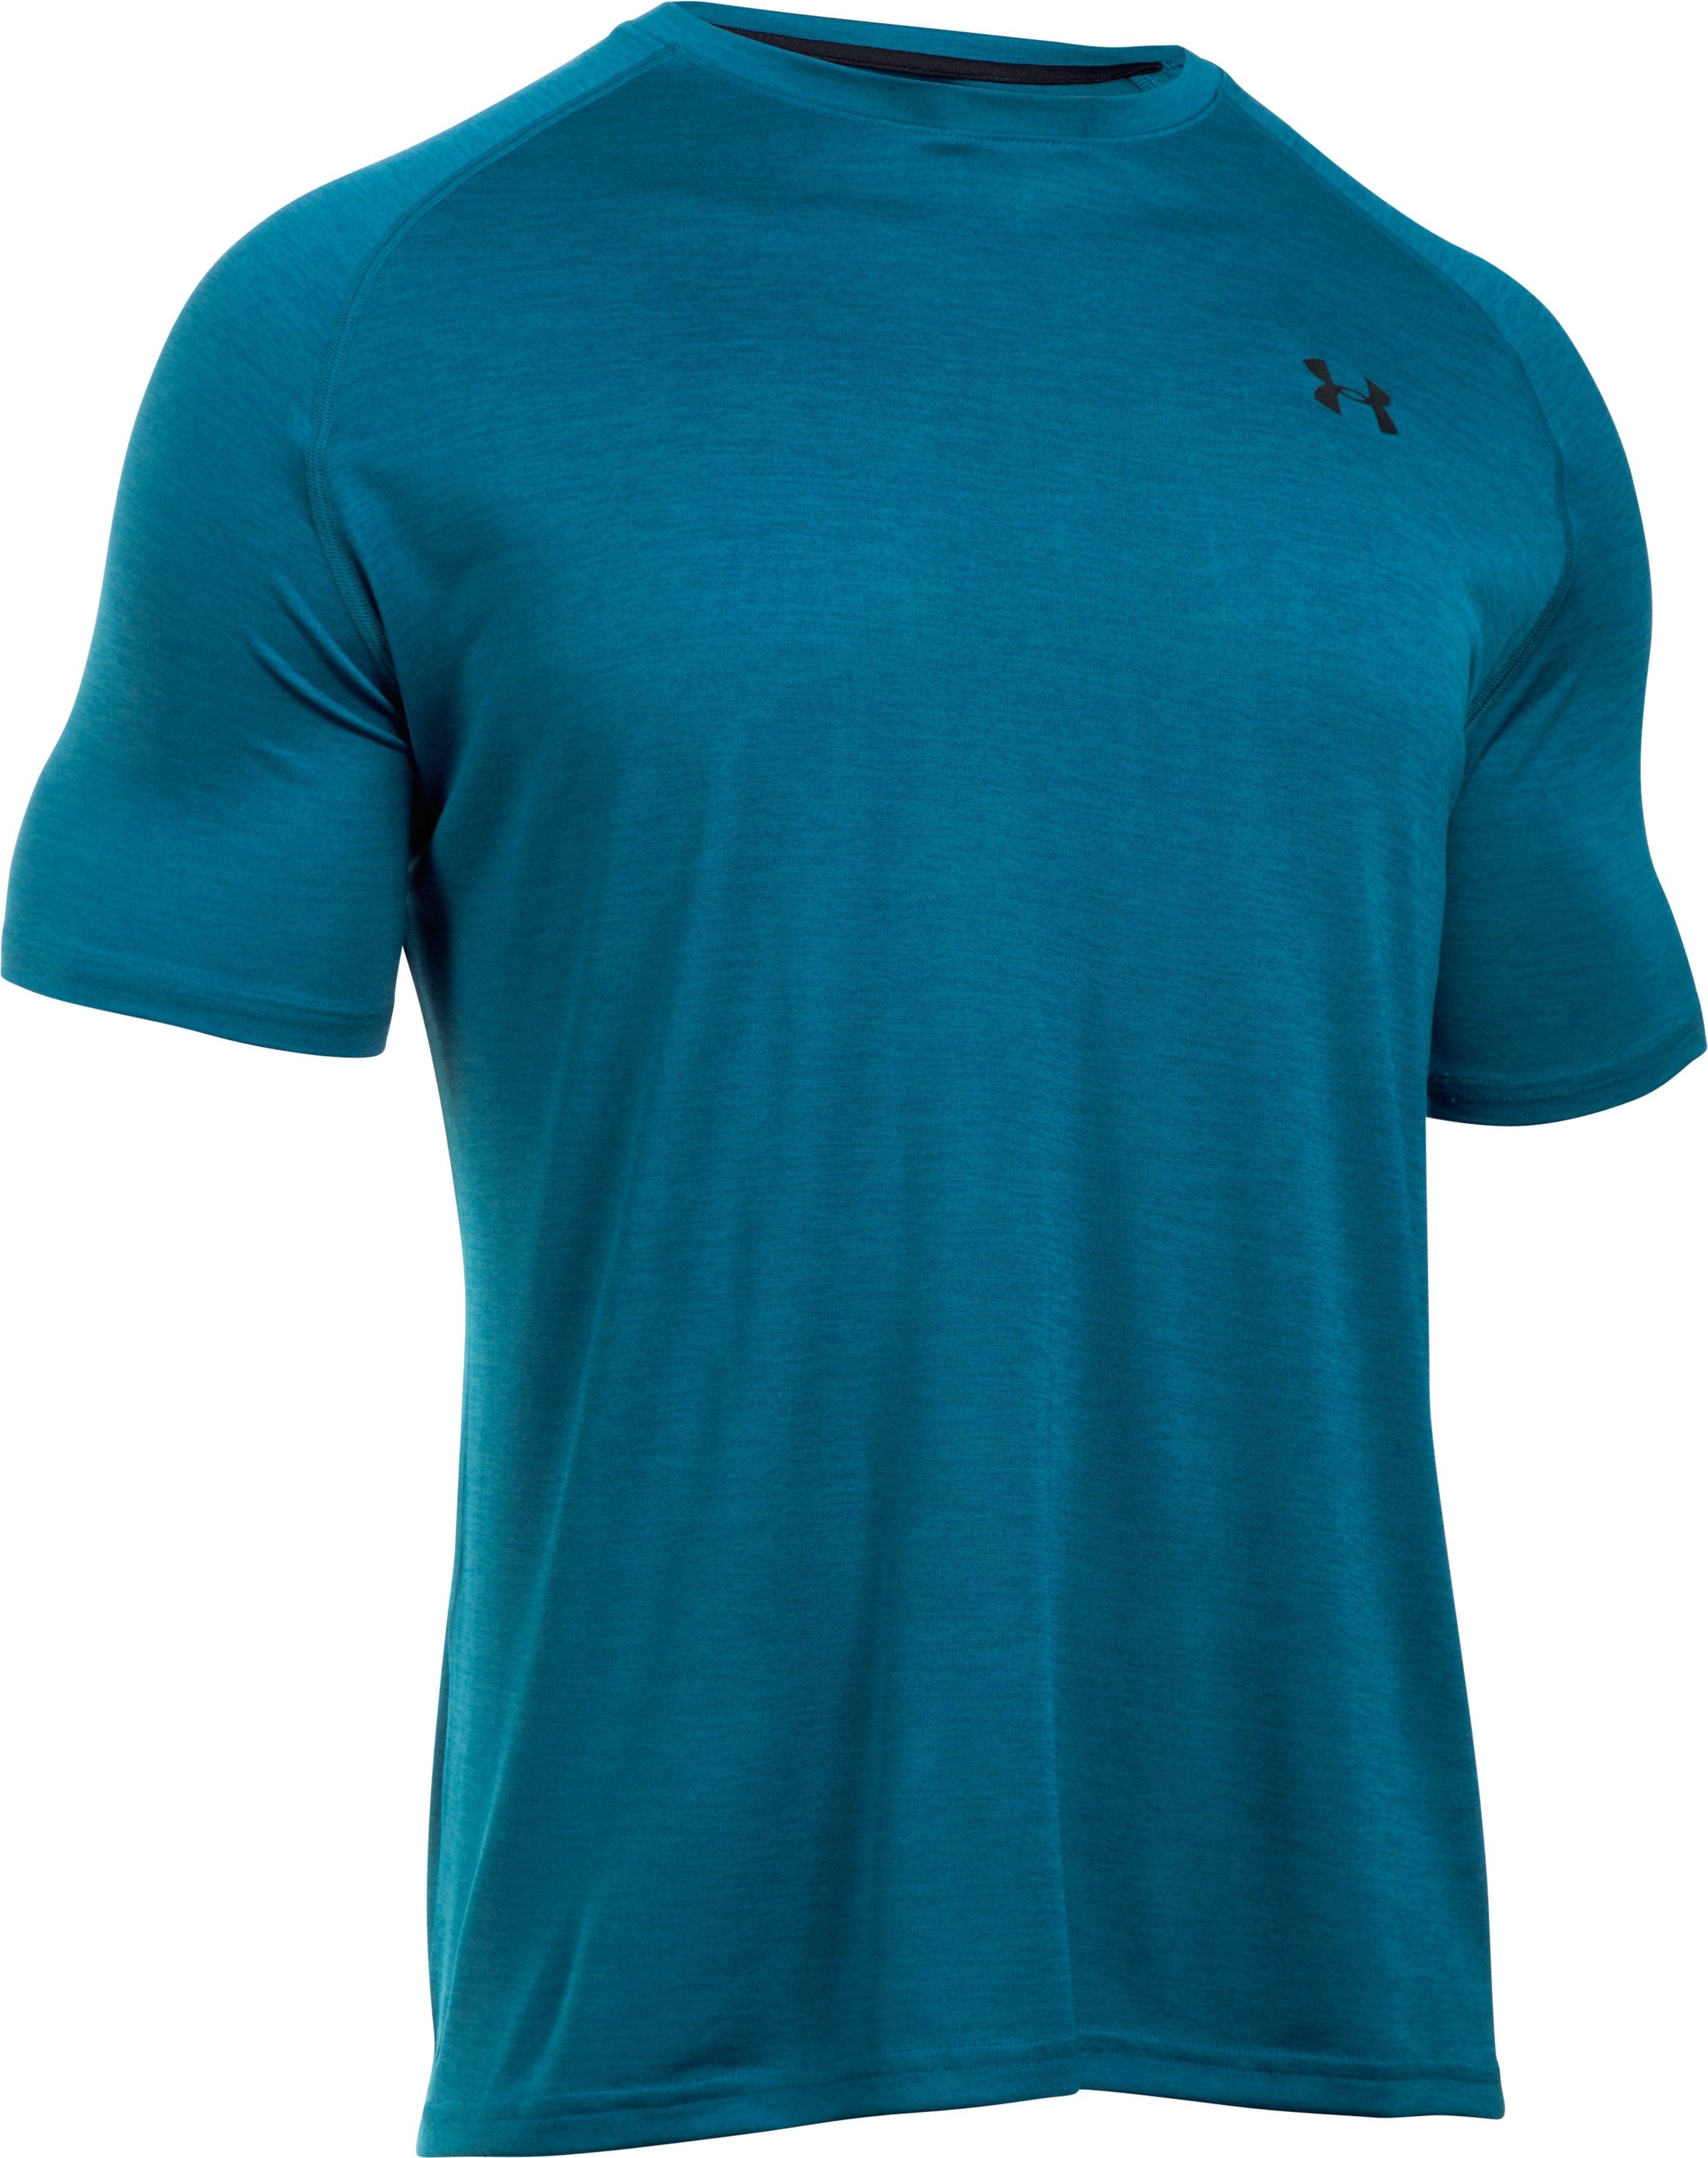 Men's UA Tech™ Short Sleeve T-Shirt, PEACOCK